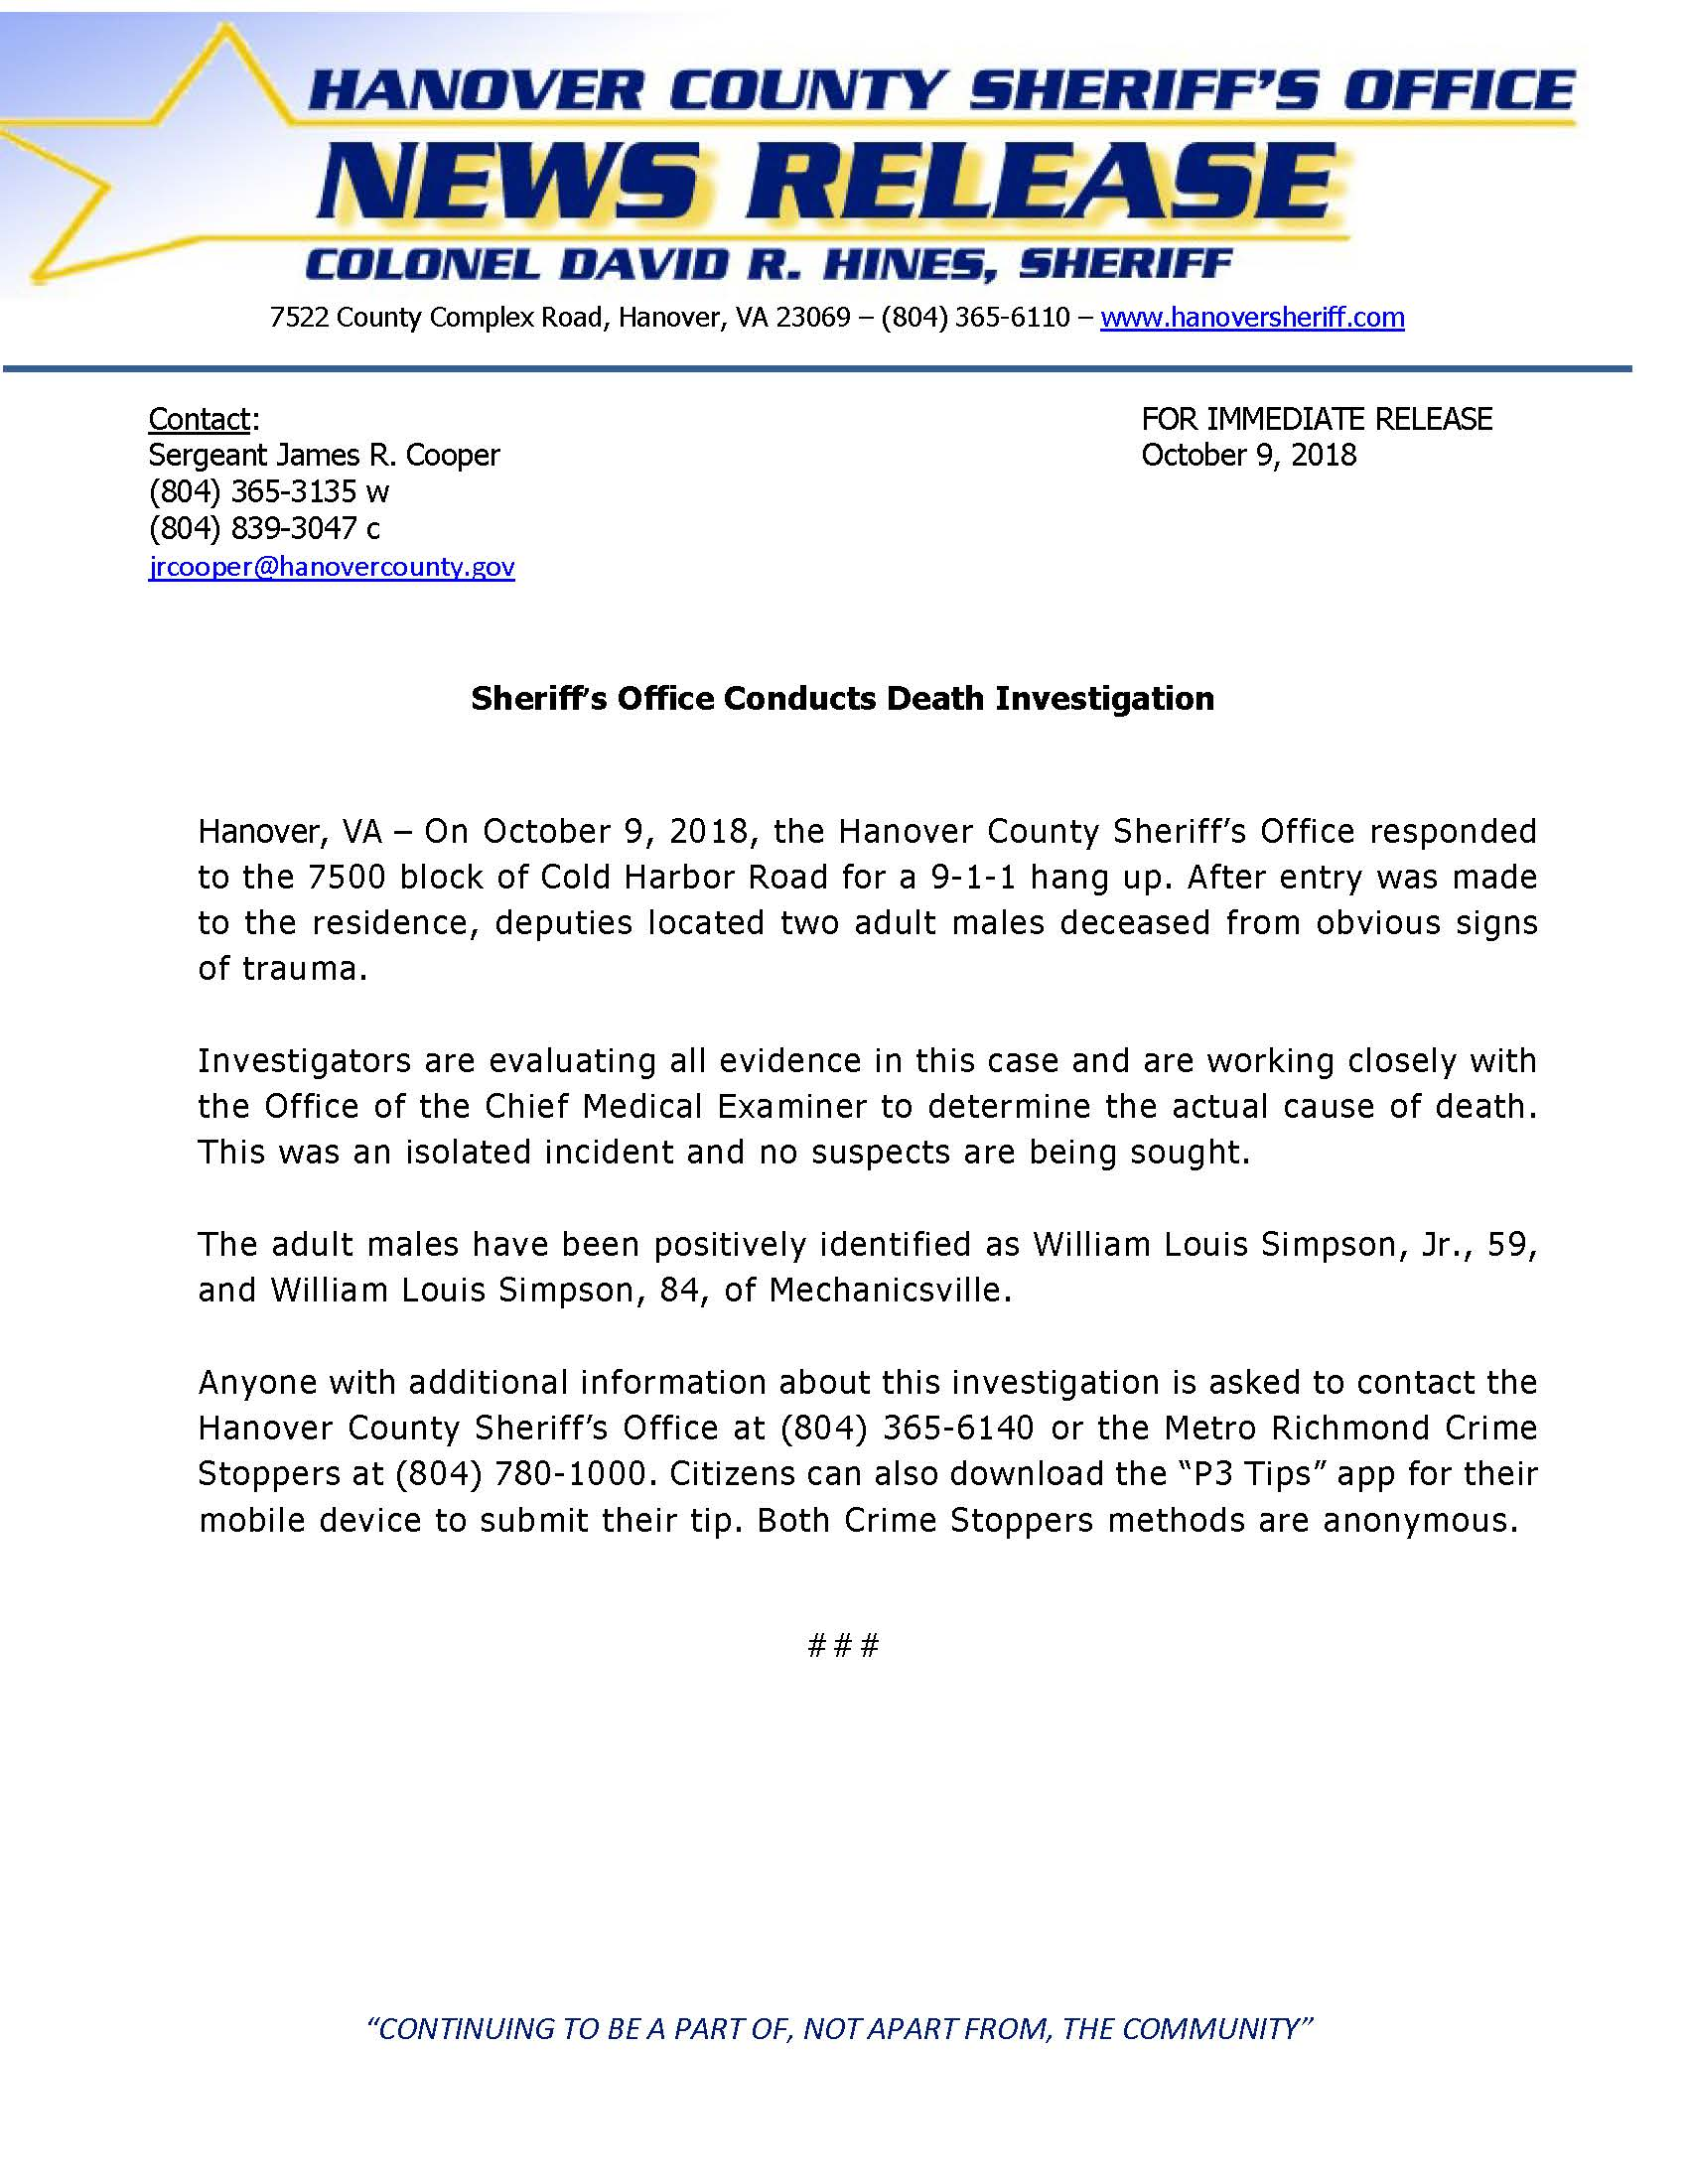 HCSO - Sheriffs Office Conducts Death Investigation- October 9, 2018